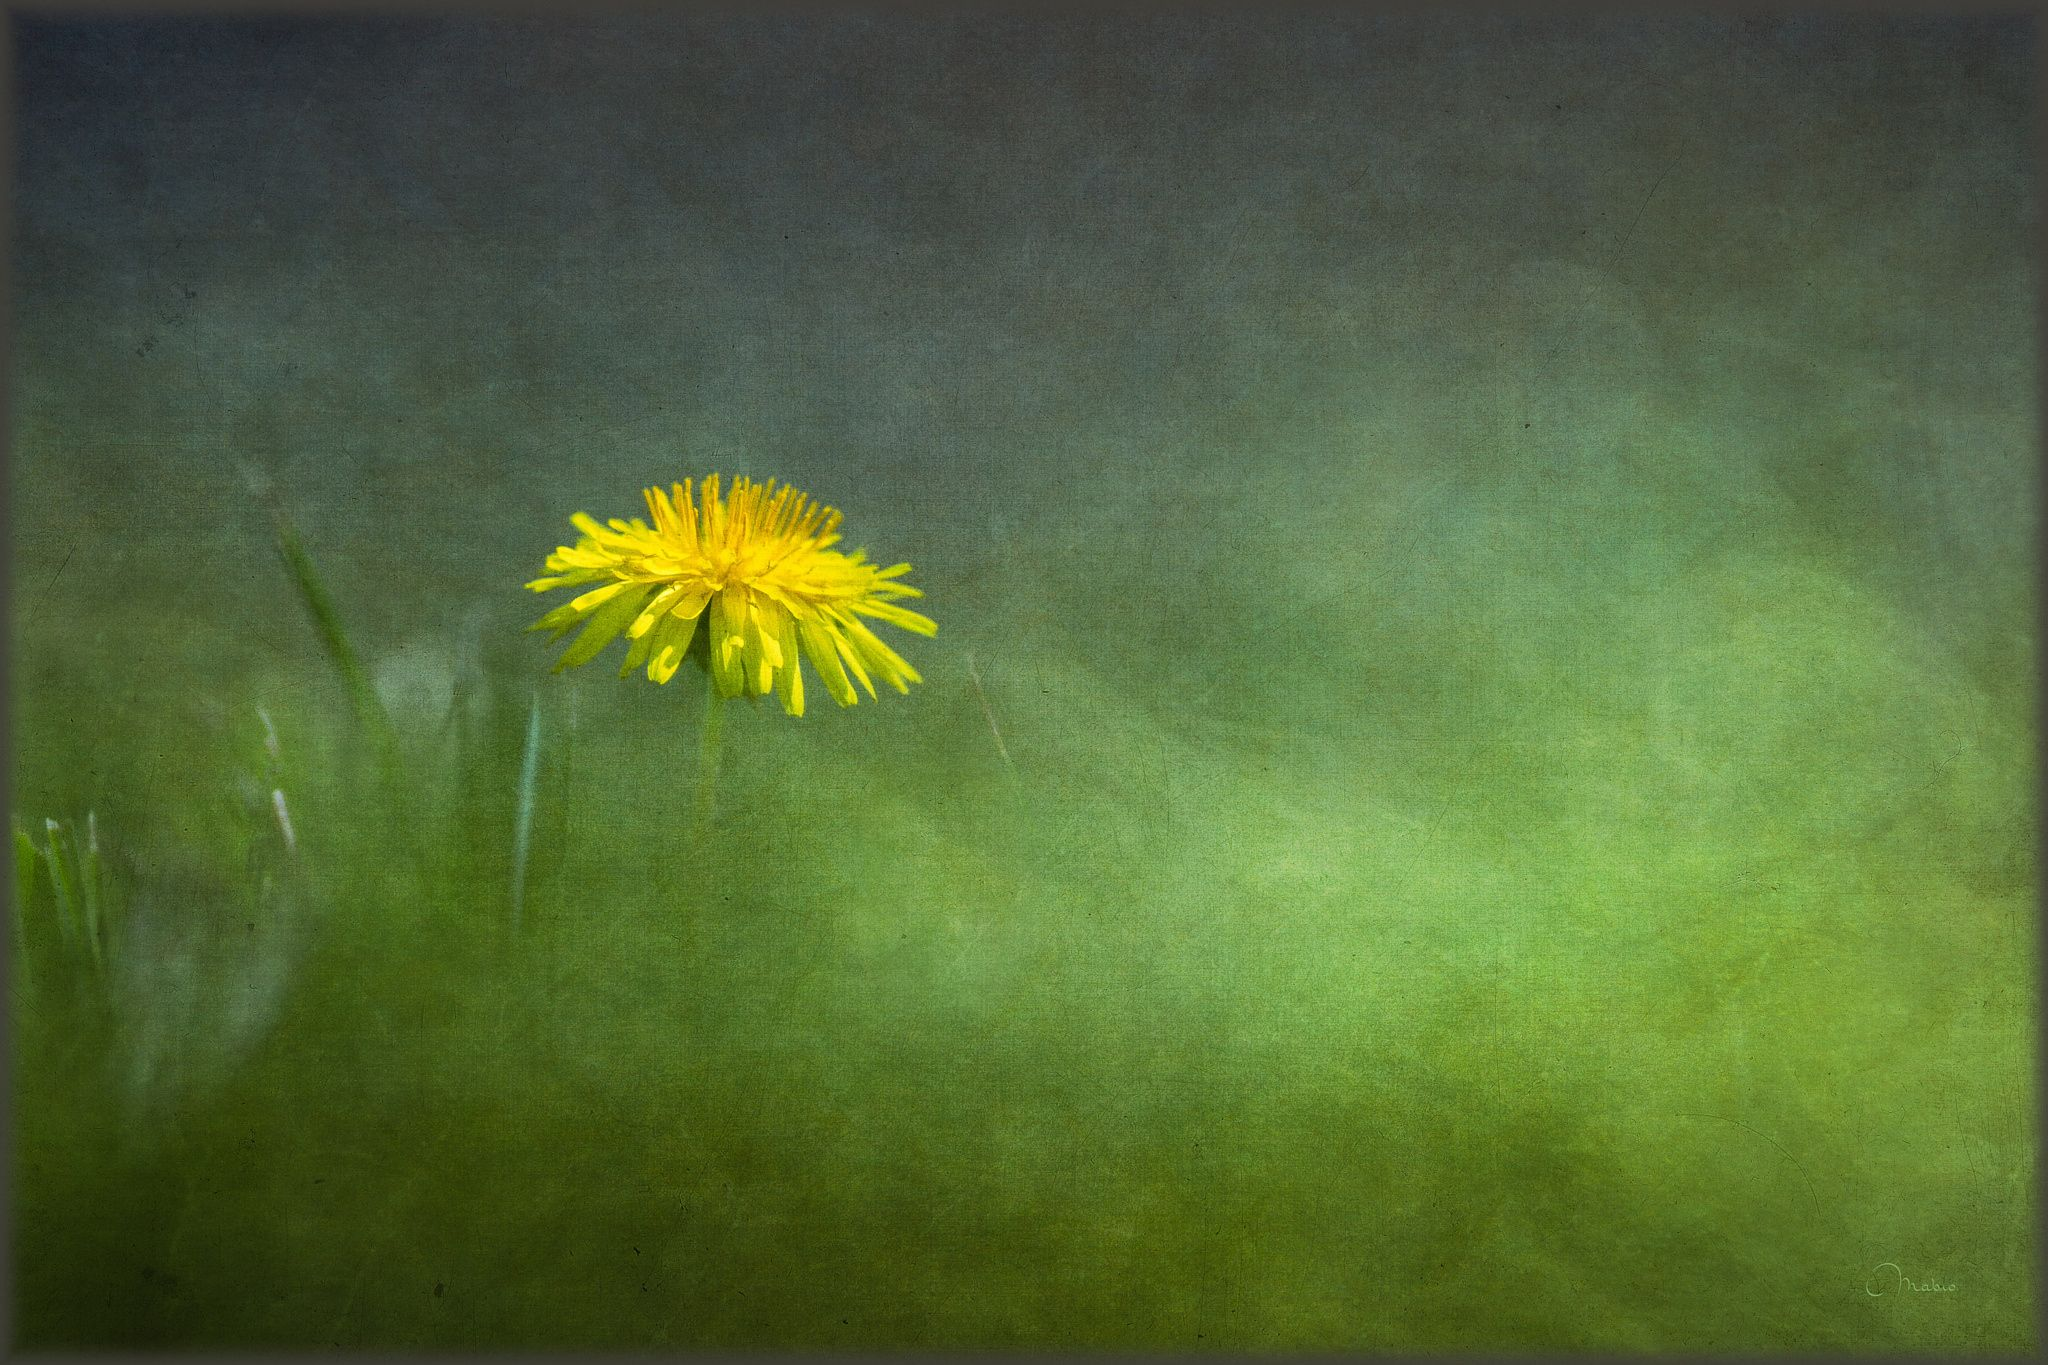 Dandelion early in the morning by Marc Bronders